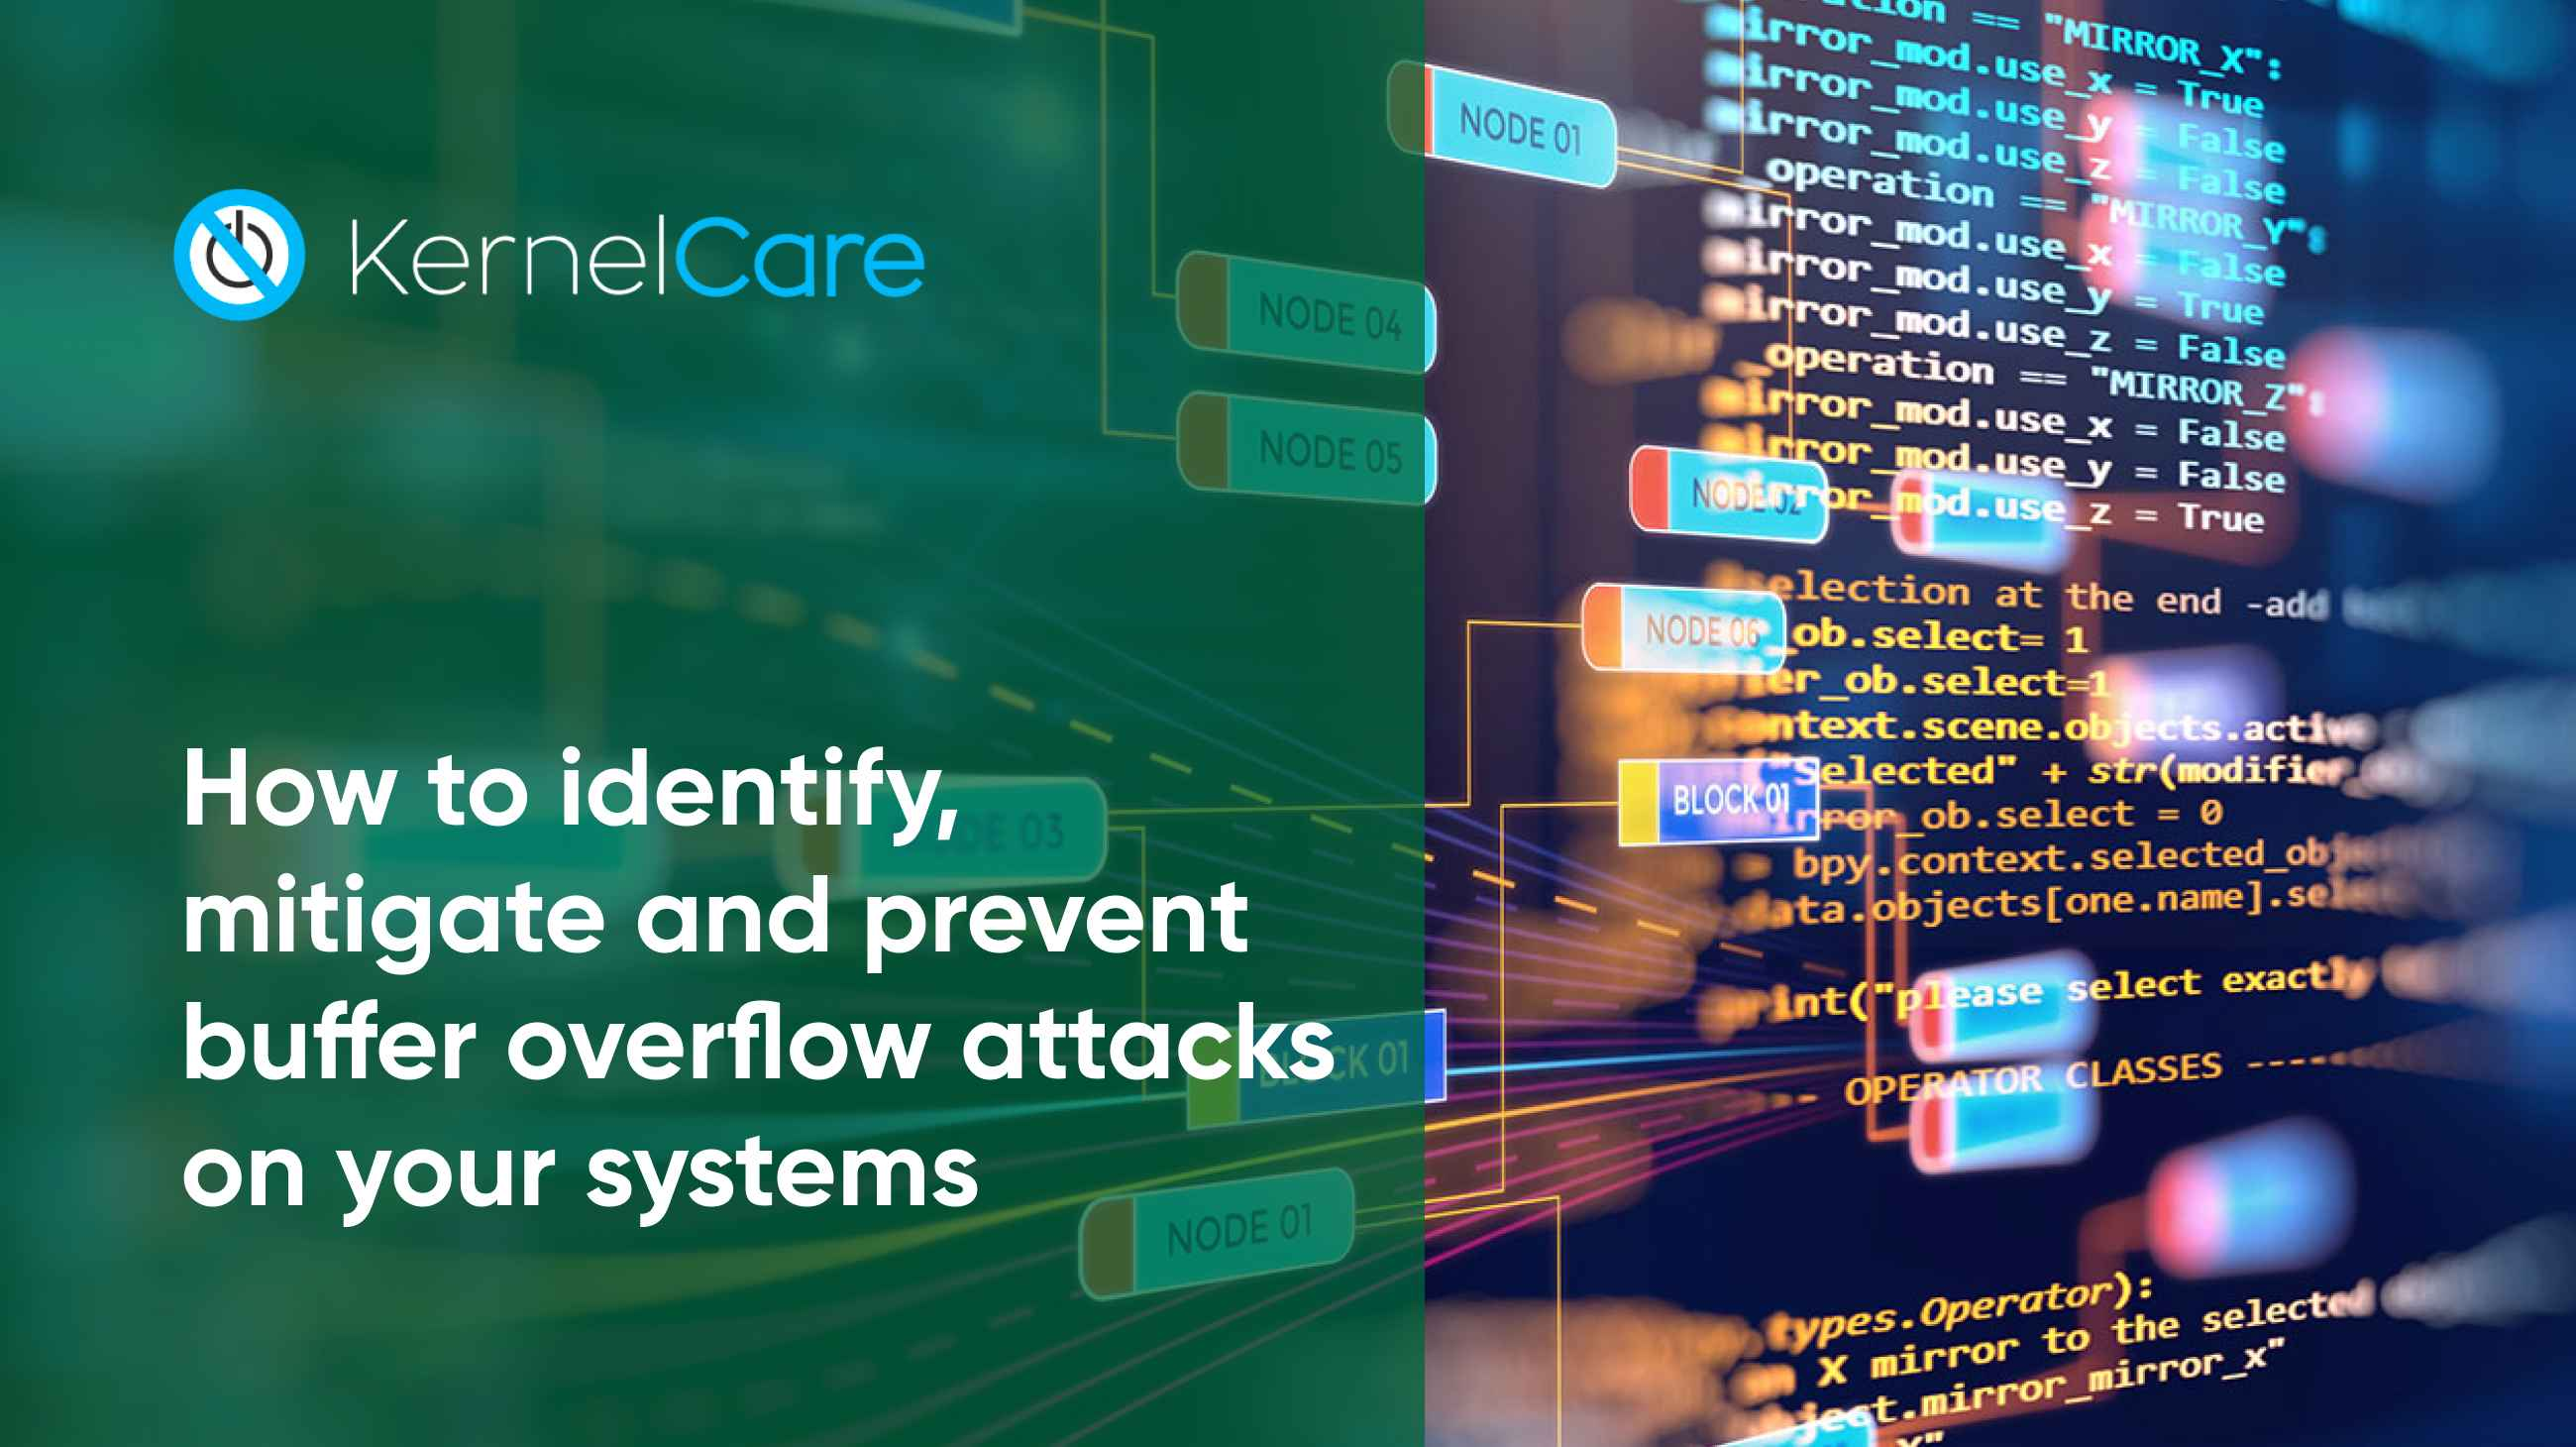 How to identify, mitigate and prevent buffer overflow attacks on your systems